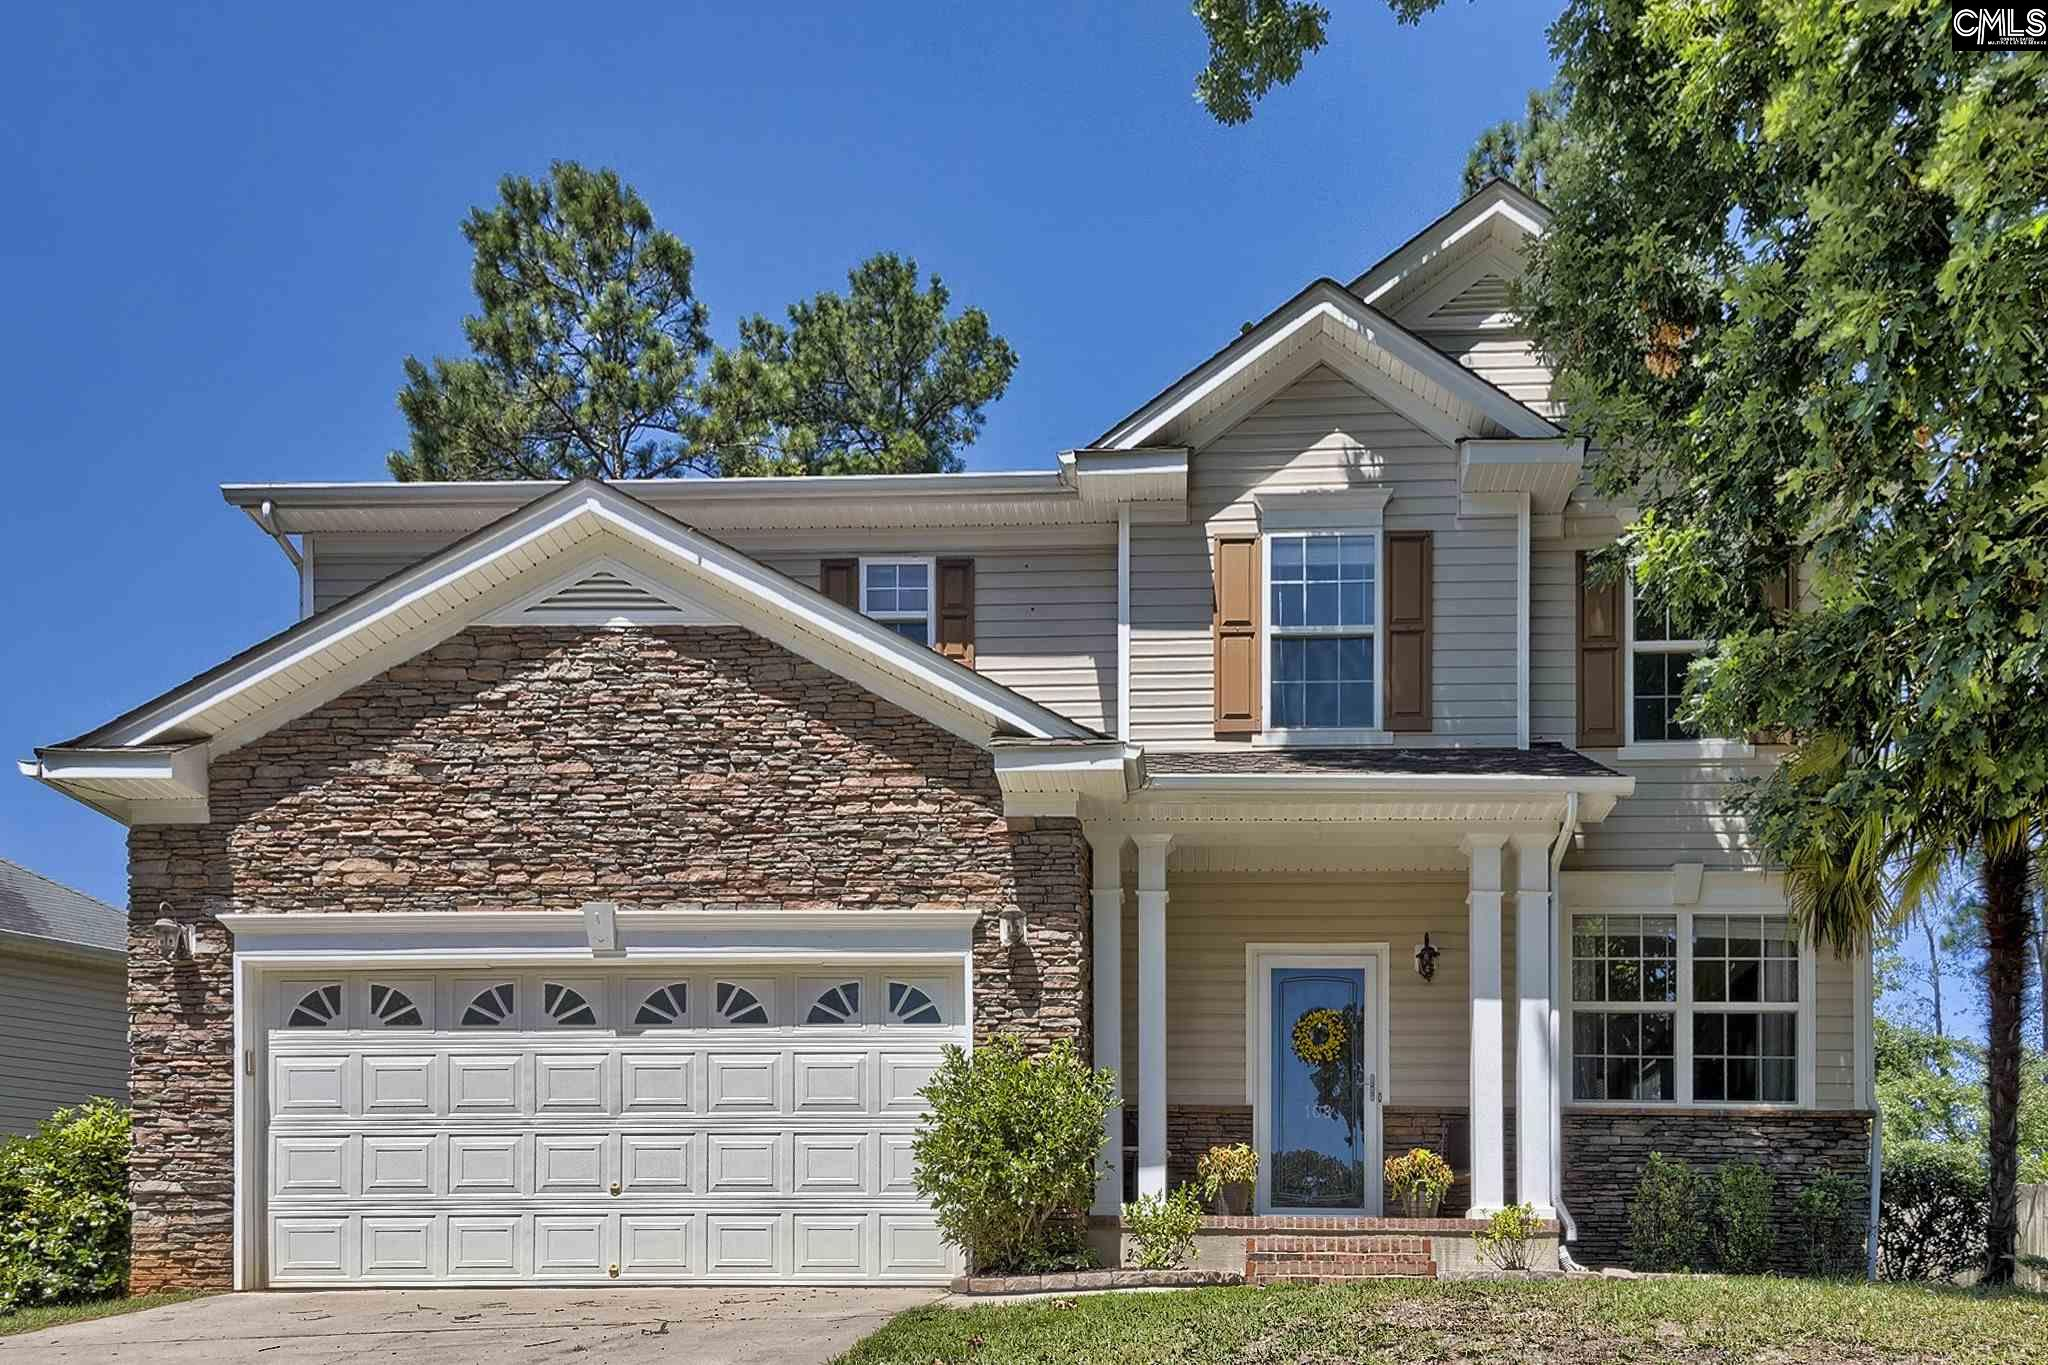 108 Underwood Lexington, SC 29072